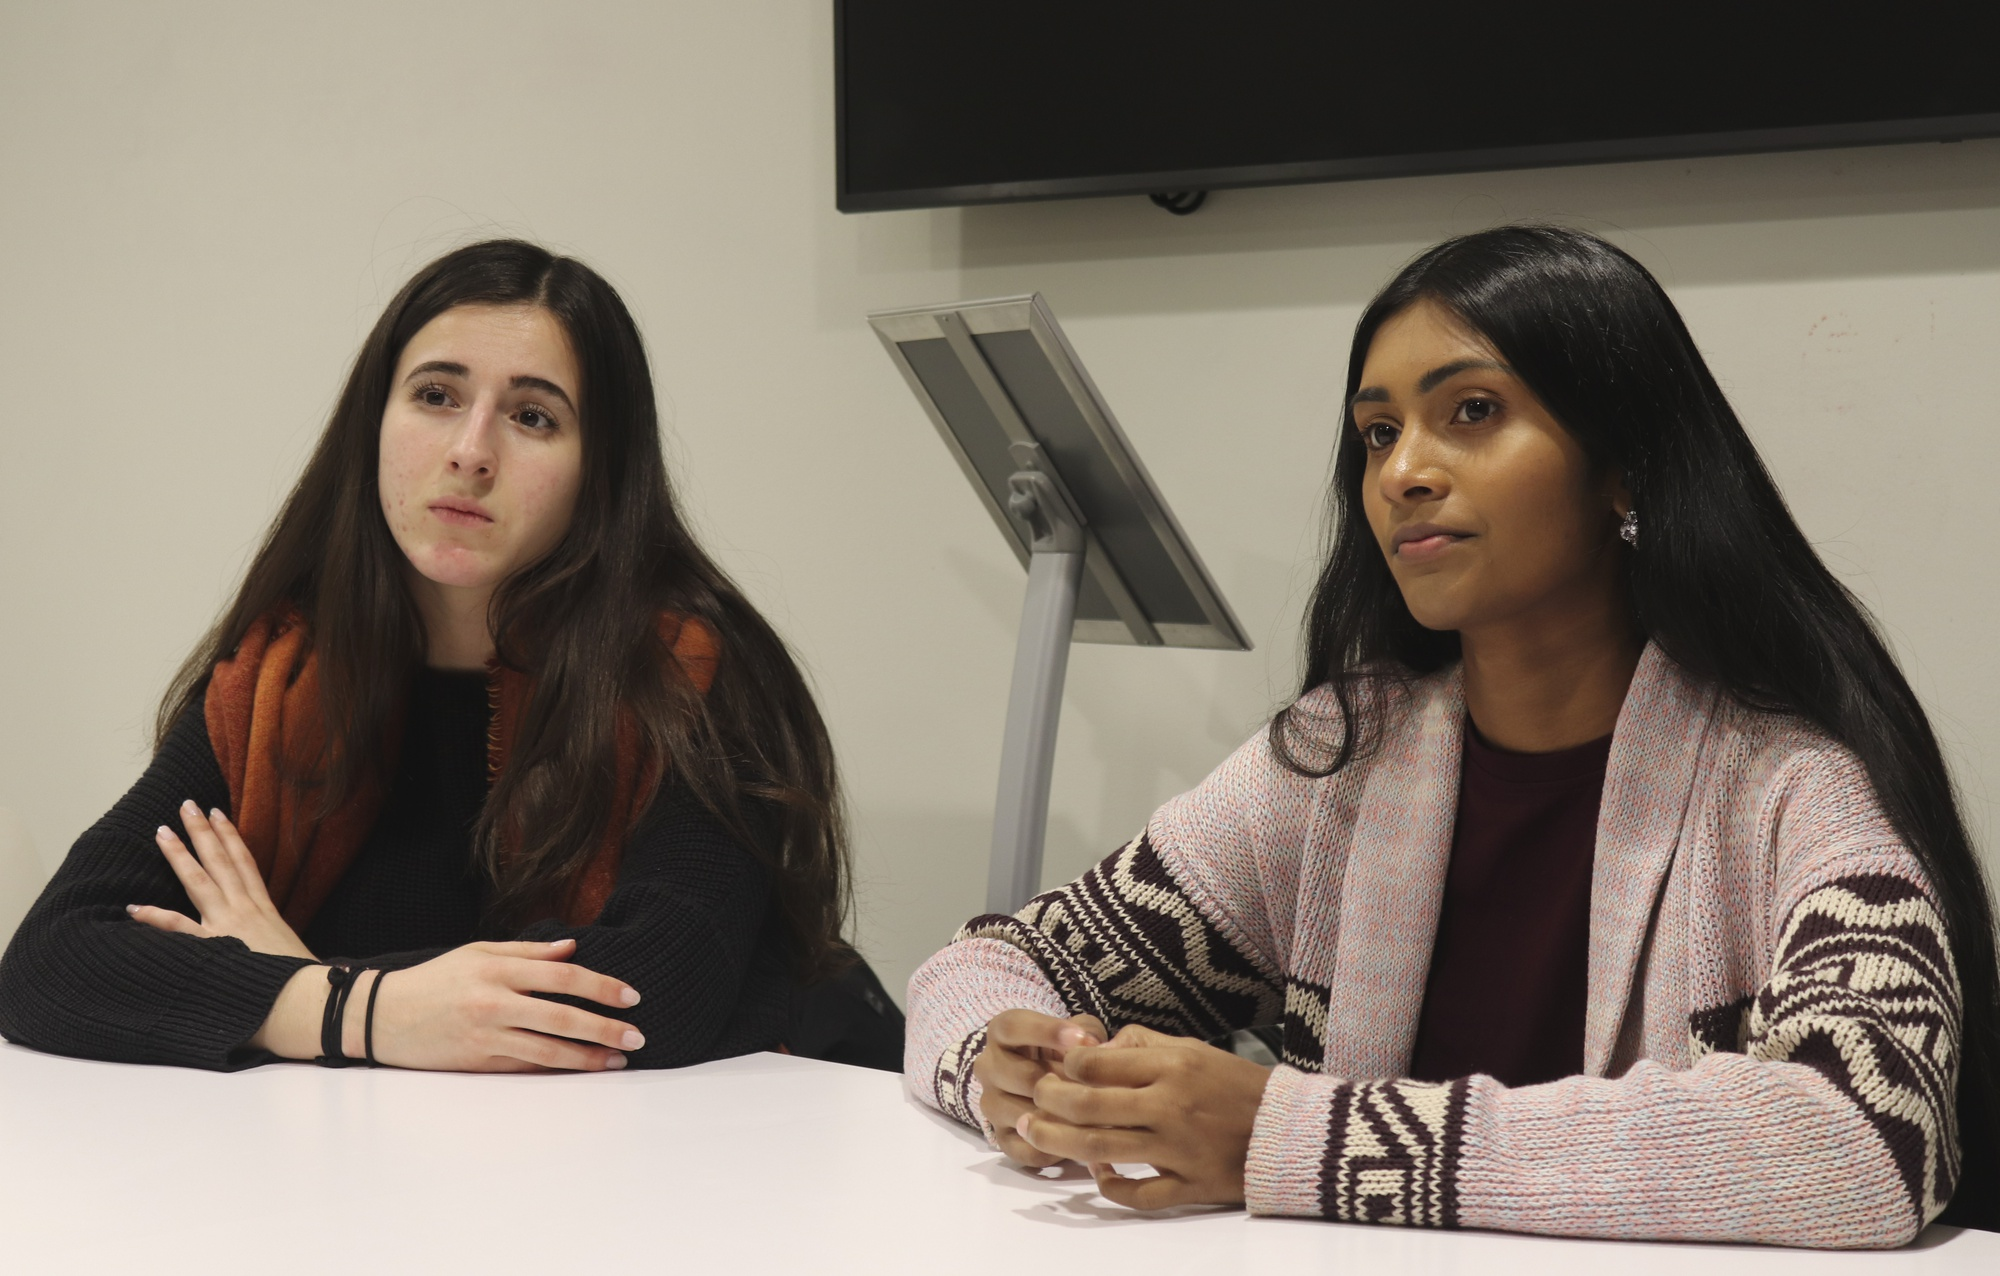 Sruthi Palaniappan '20 and Julia M. Huesa '20, President and Vice President of the Undergraduate Council, sat down with The Crimson to talk about their plans for the upcoming year as they begin their tenure.